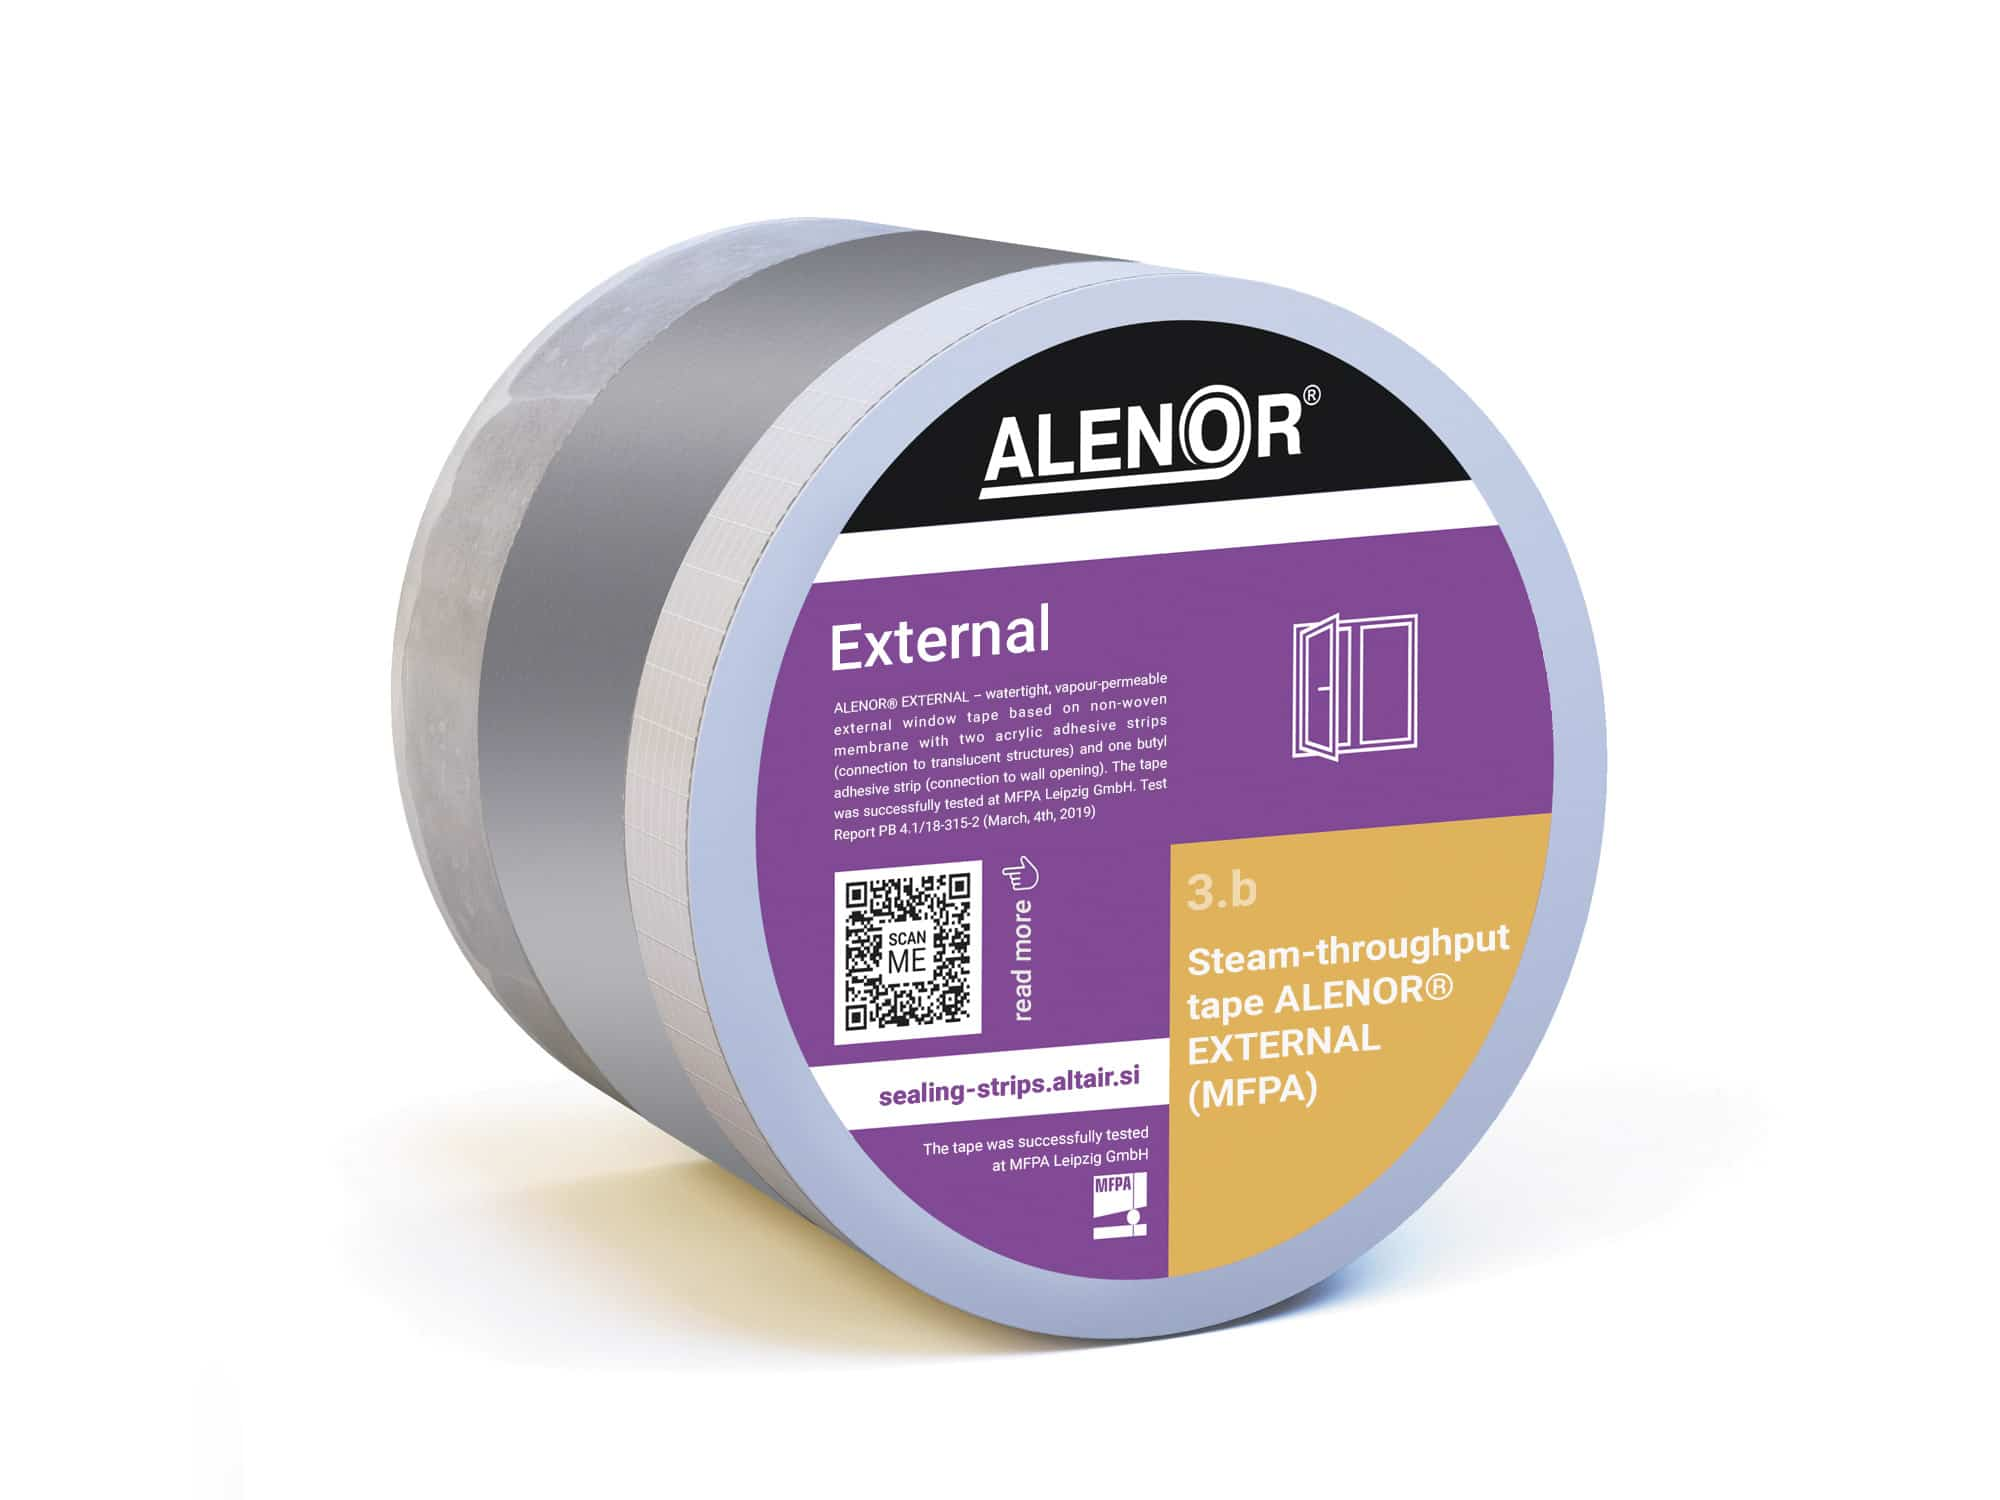 Steam-throughput window tape ALENOR® External (MFPA)